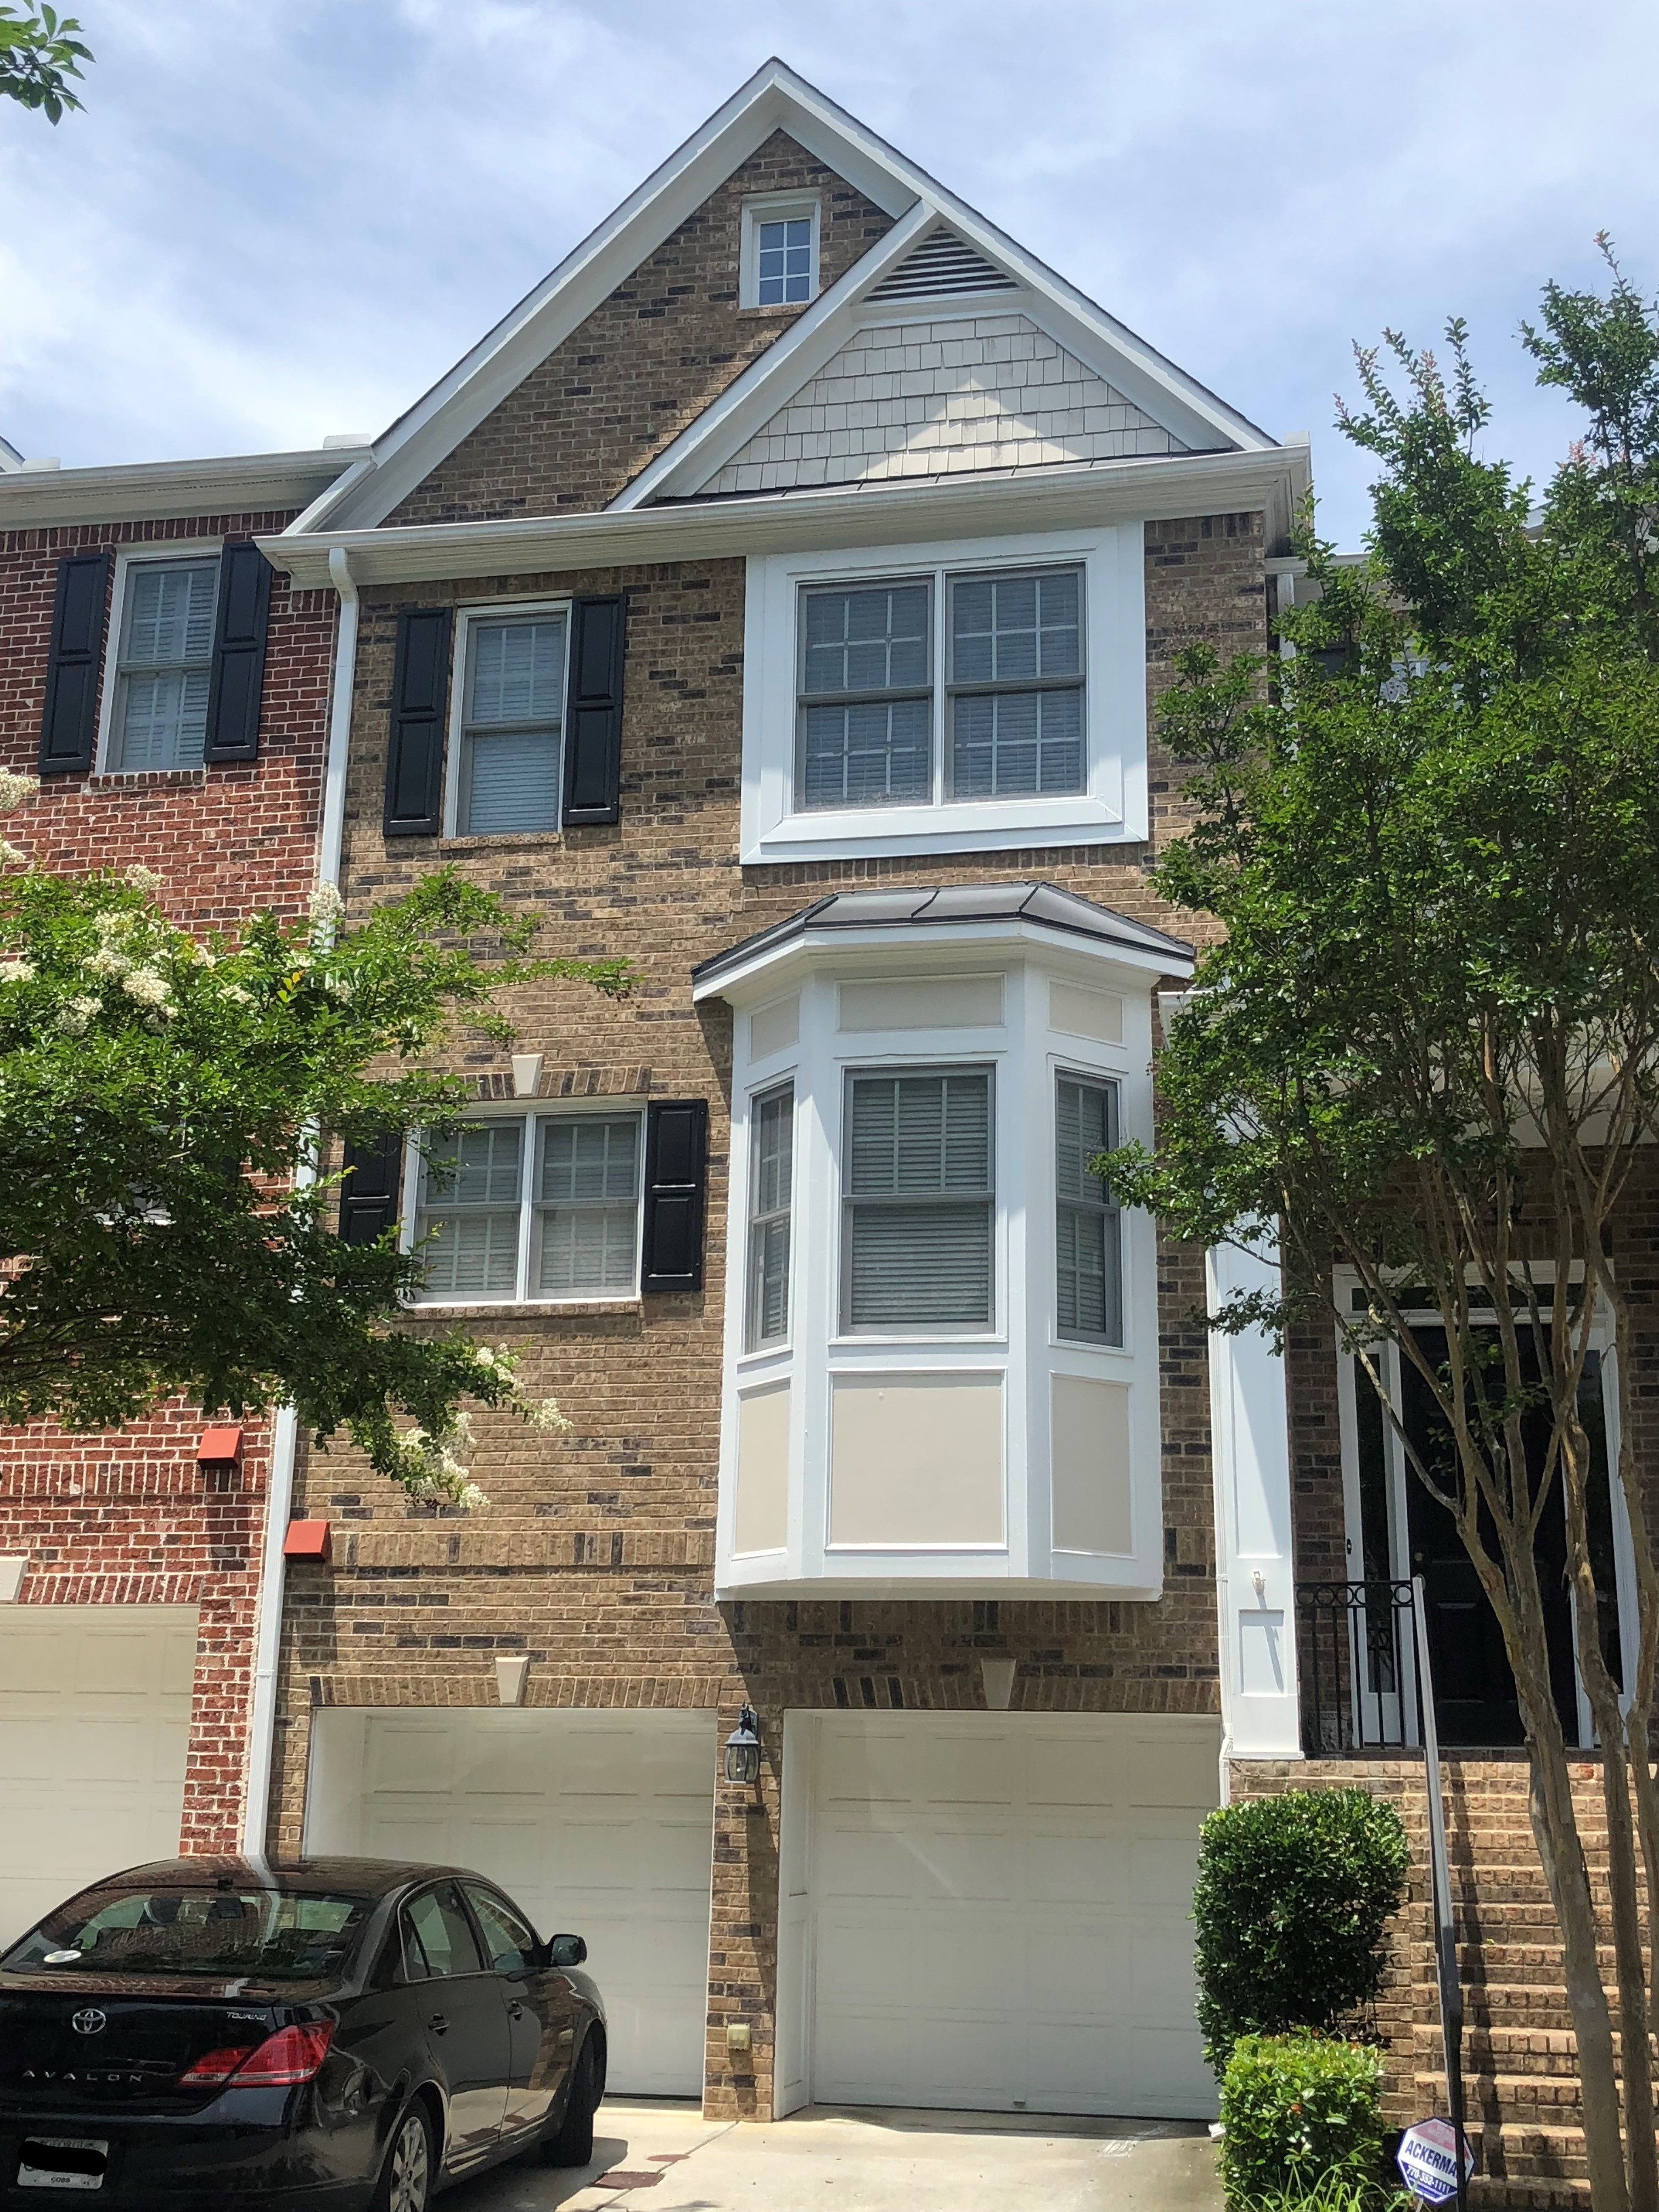 Photo of 5854 Riverstone Circle, Atlanta, GA, 30339